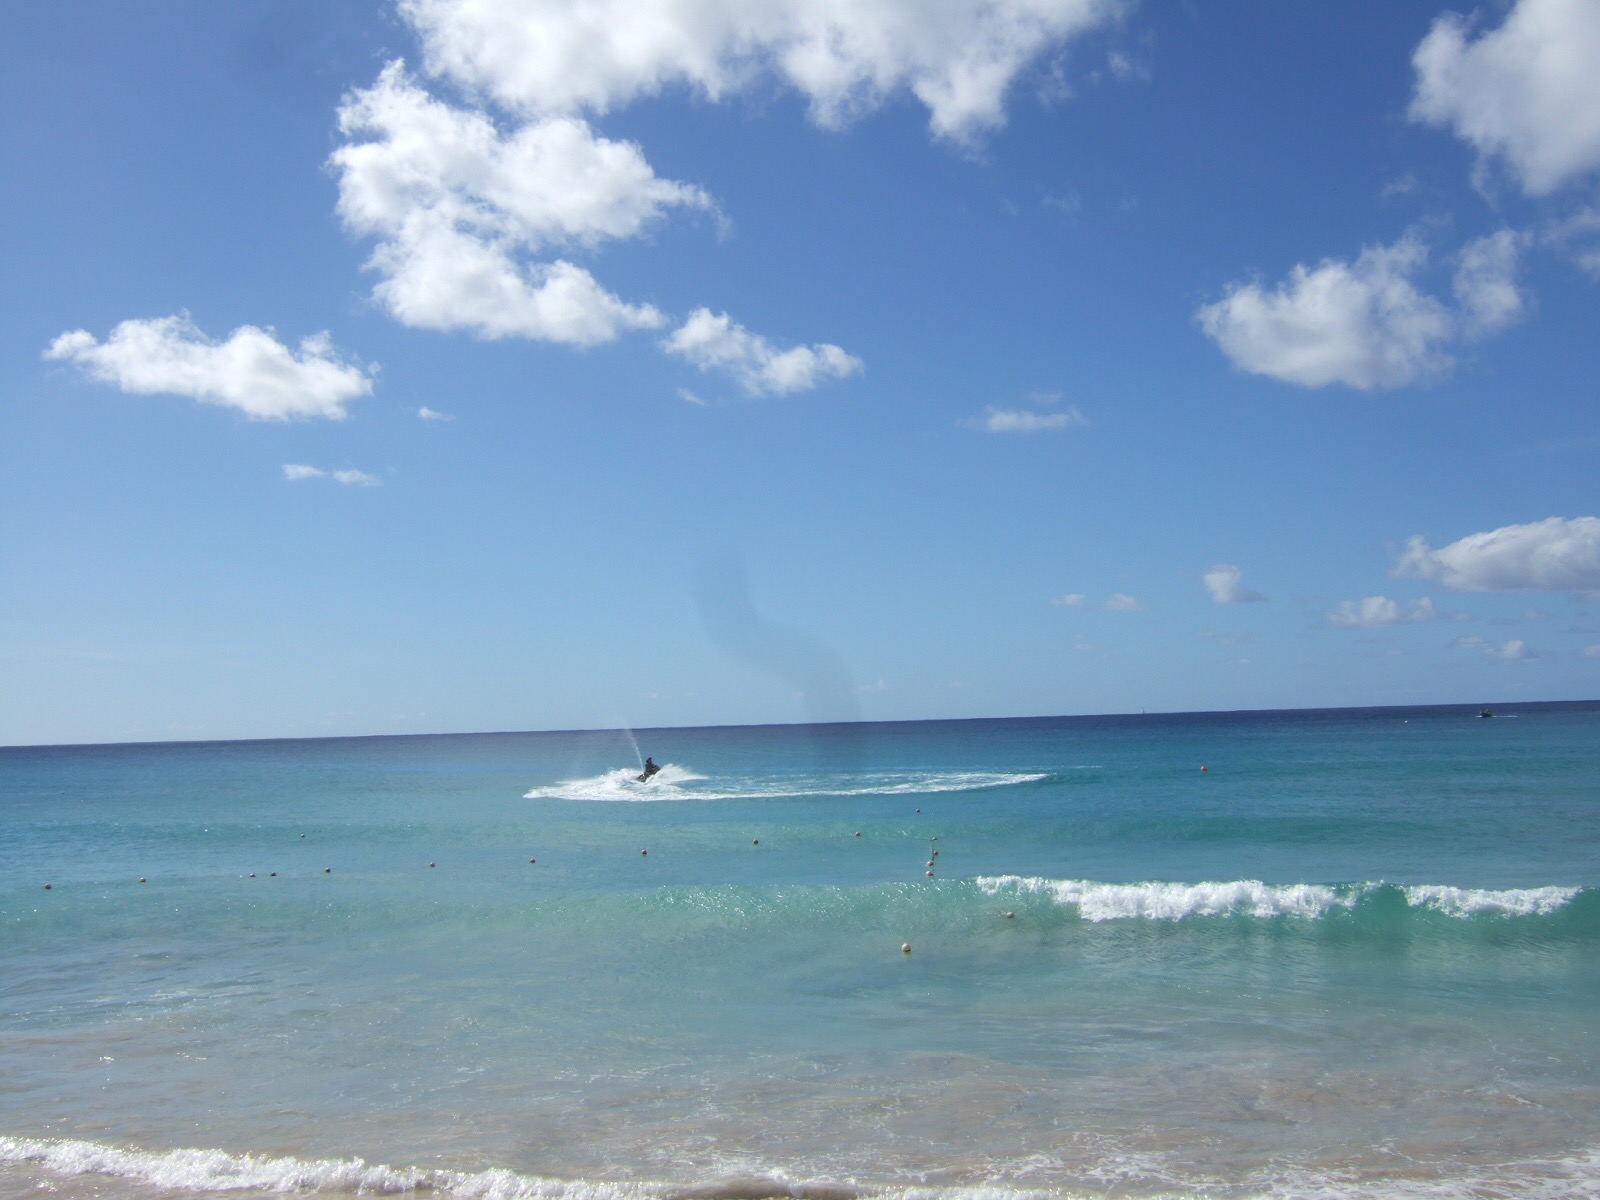 A jet ski in the turquoise waters of Rockley Accra Beach, Barbados